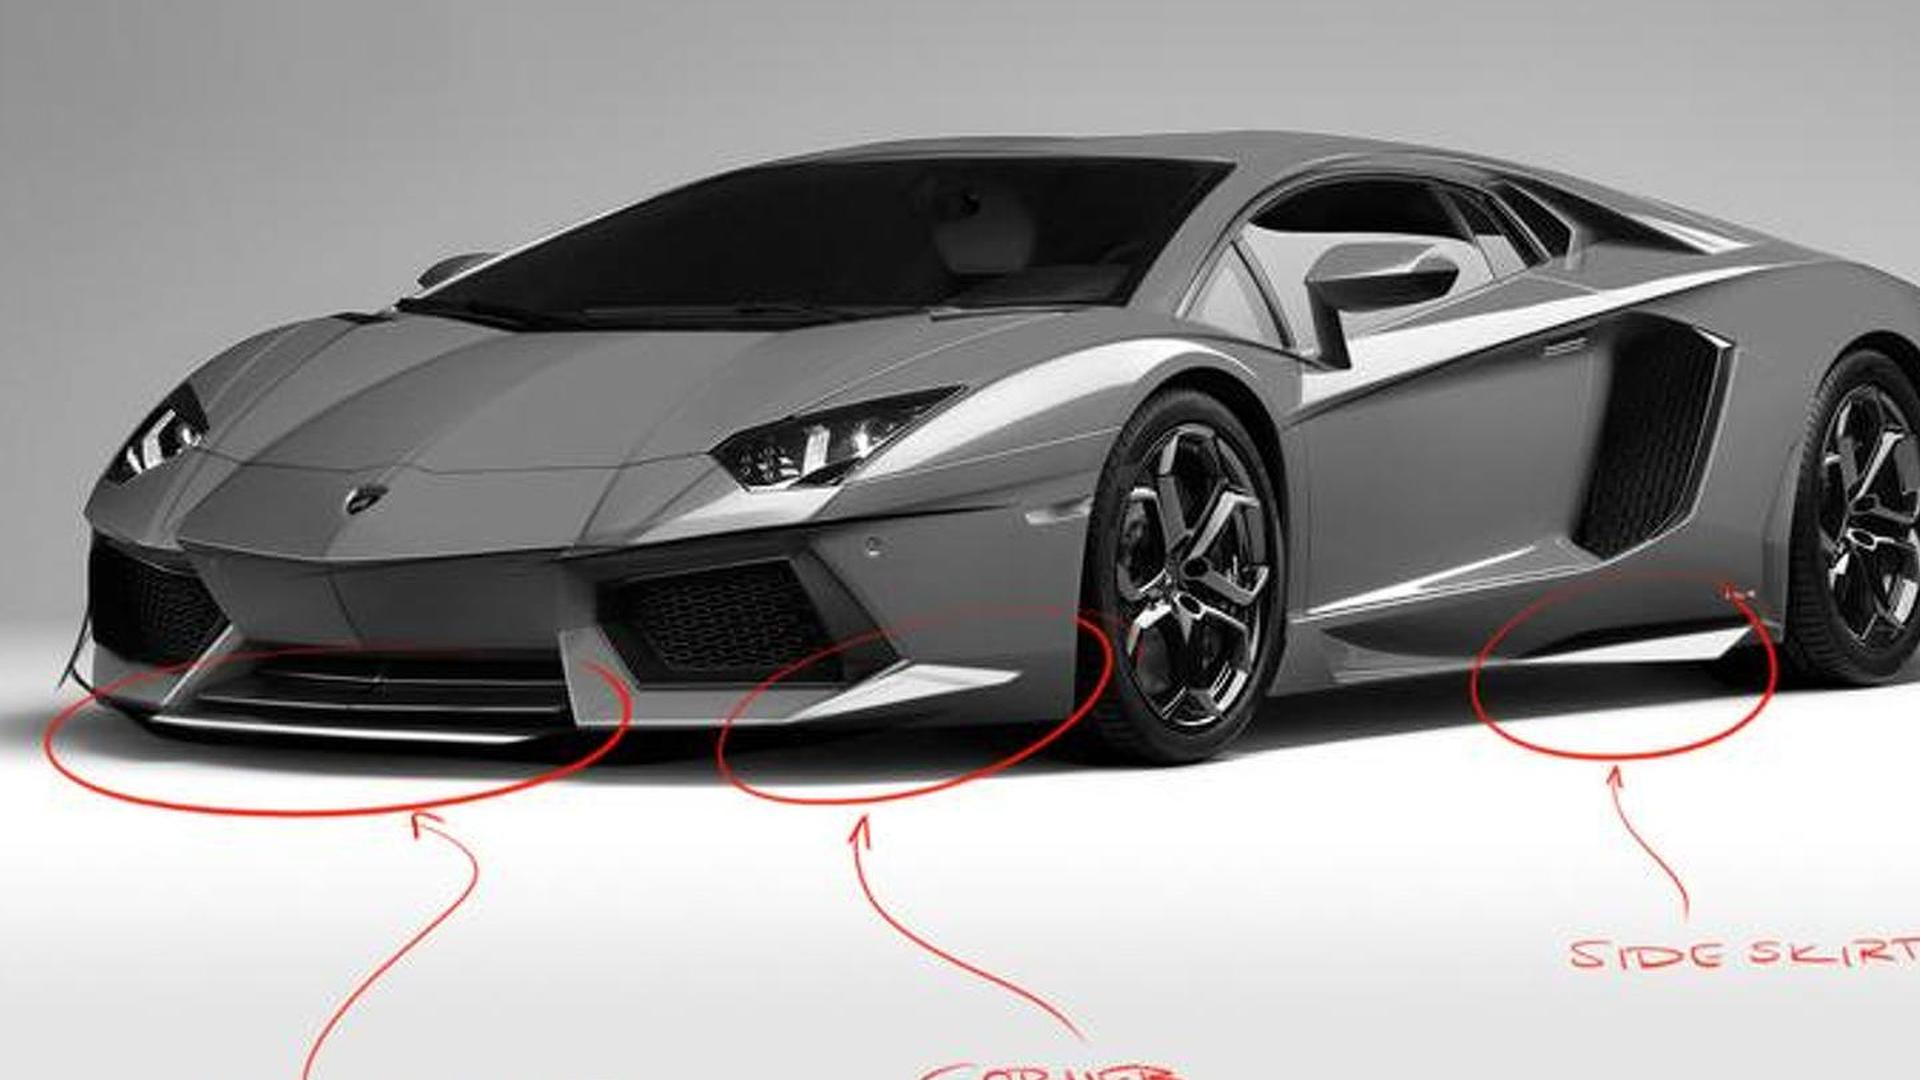 DMC Gargiulo previewed - based on the Lamborghini Aventador LP700-4